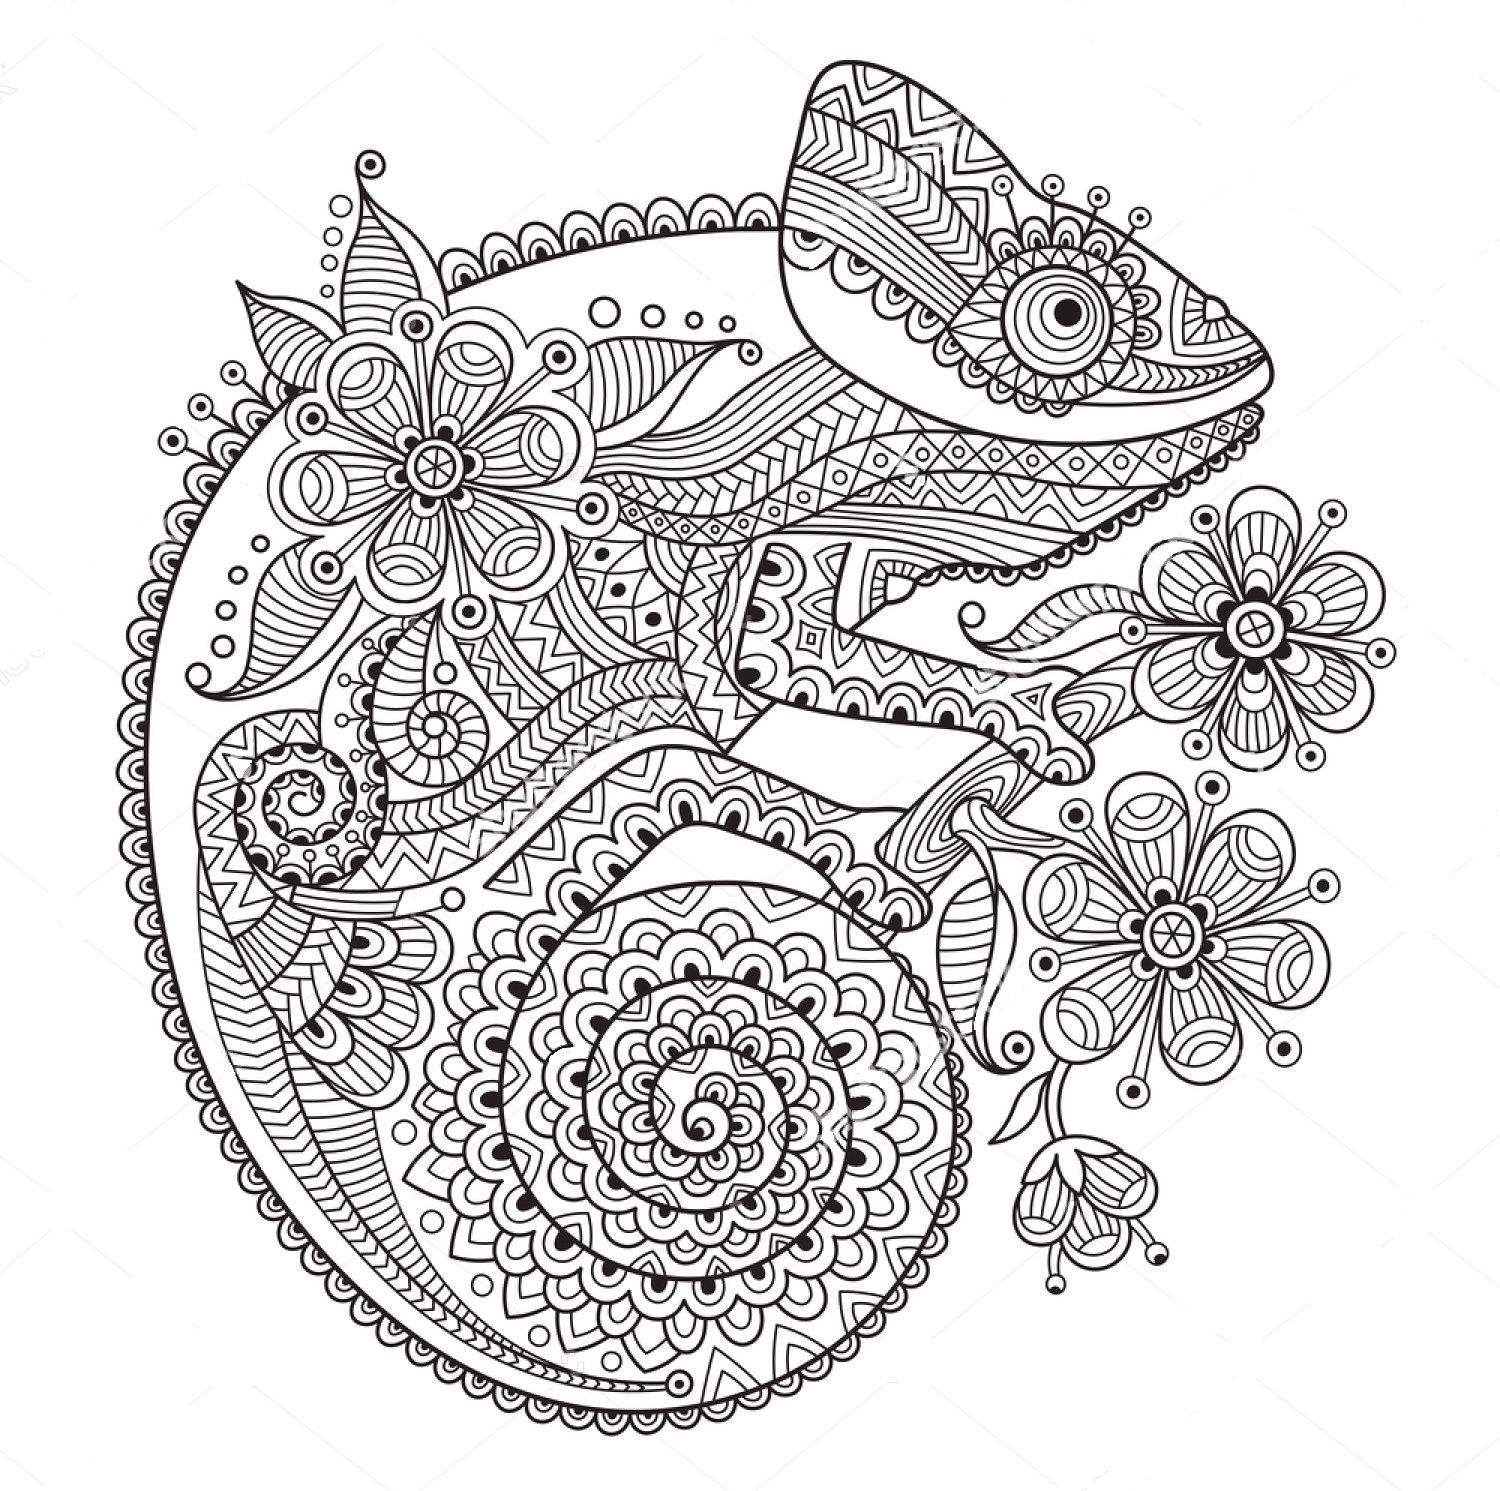 chameleon zentangle coloring page - Zentangle Coloring Pages